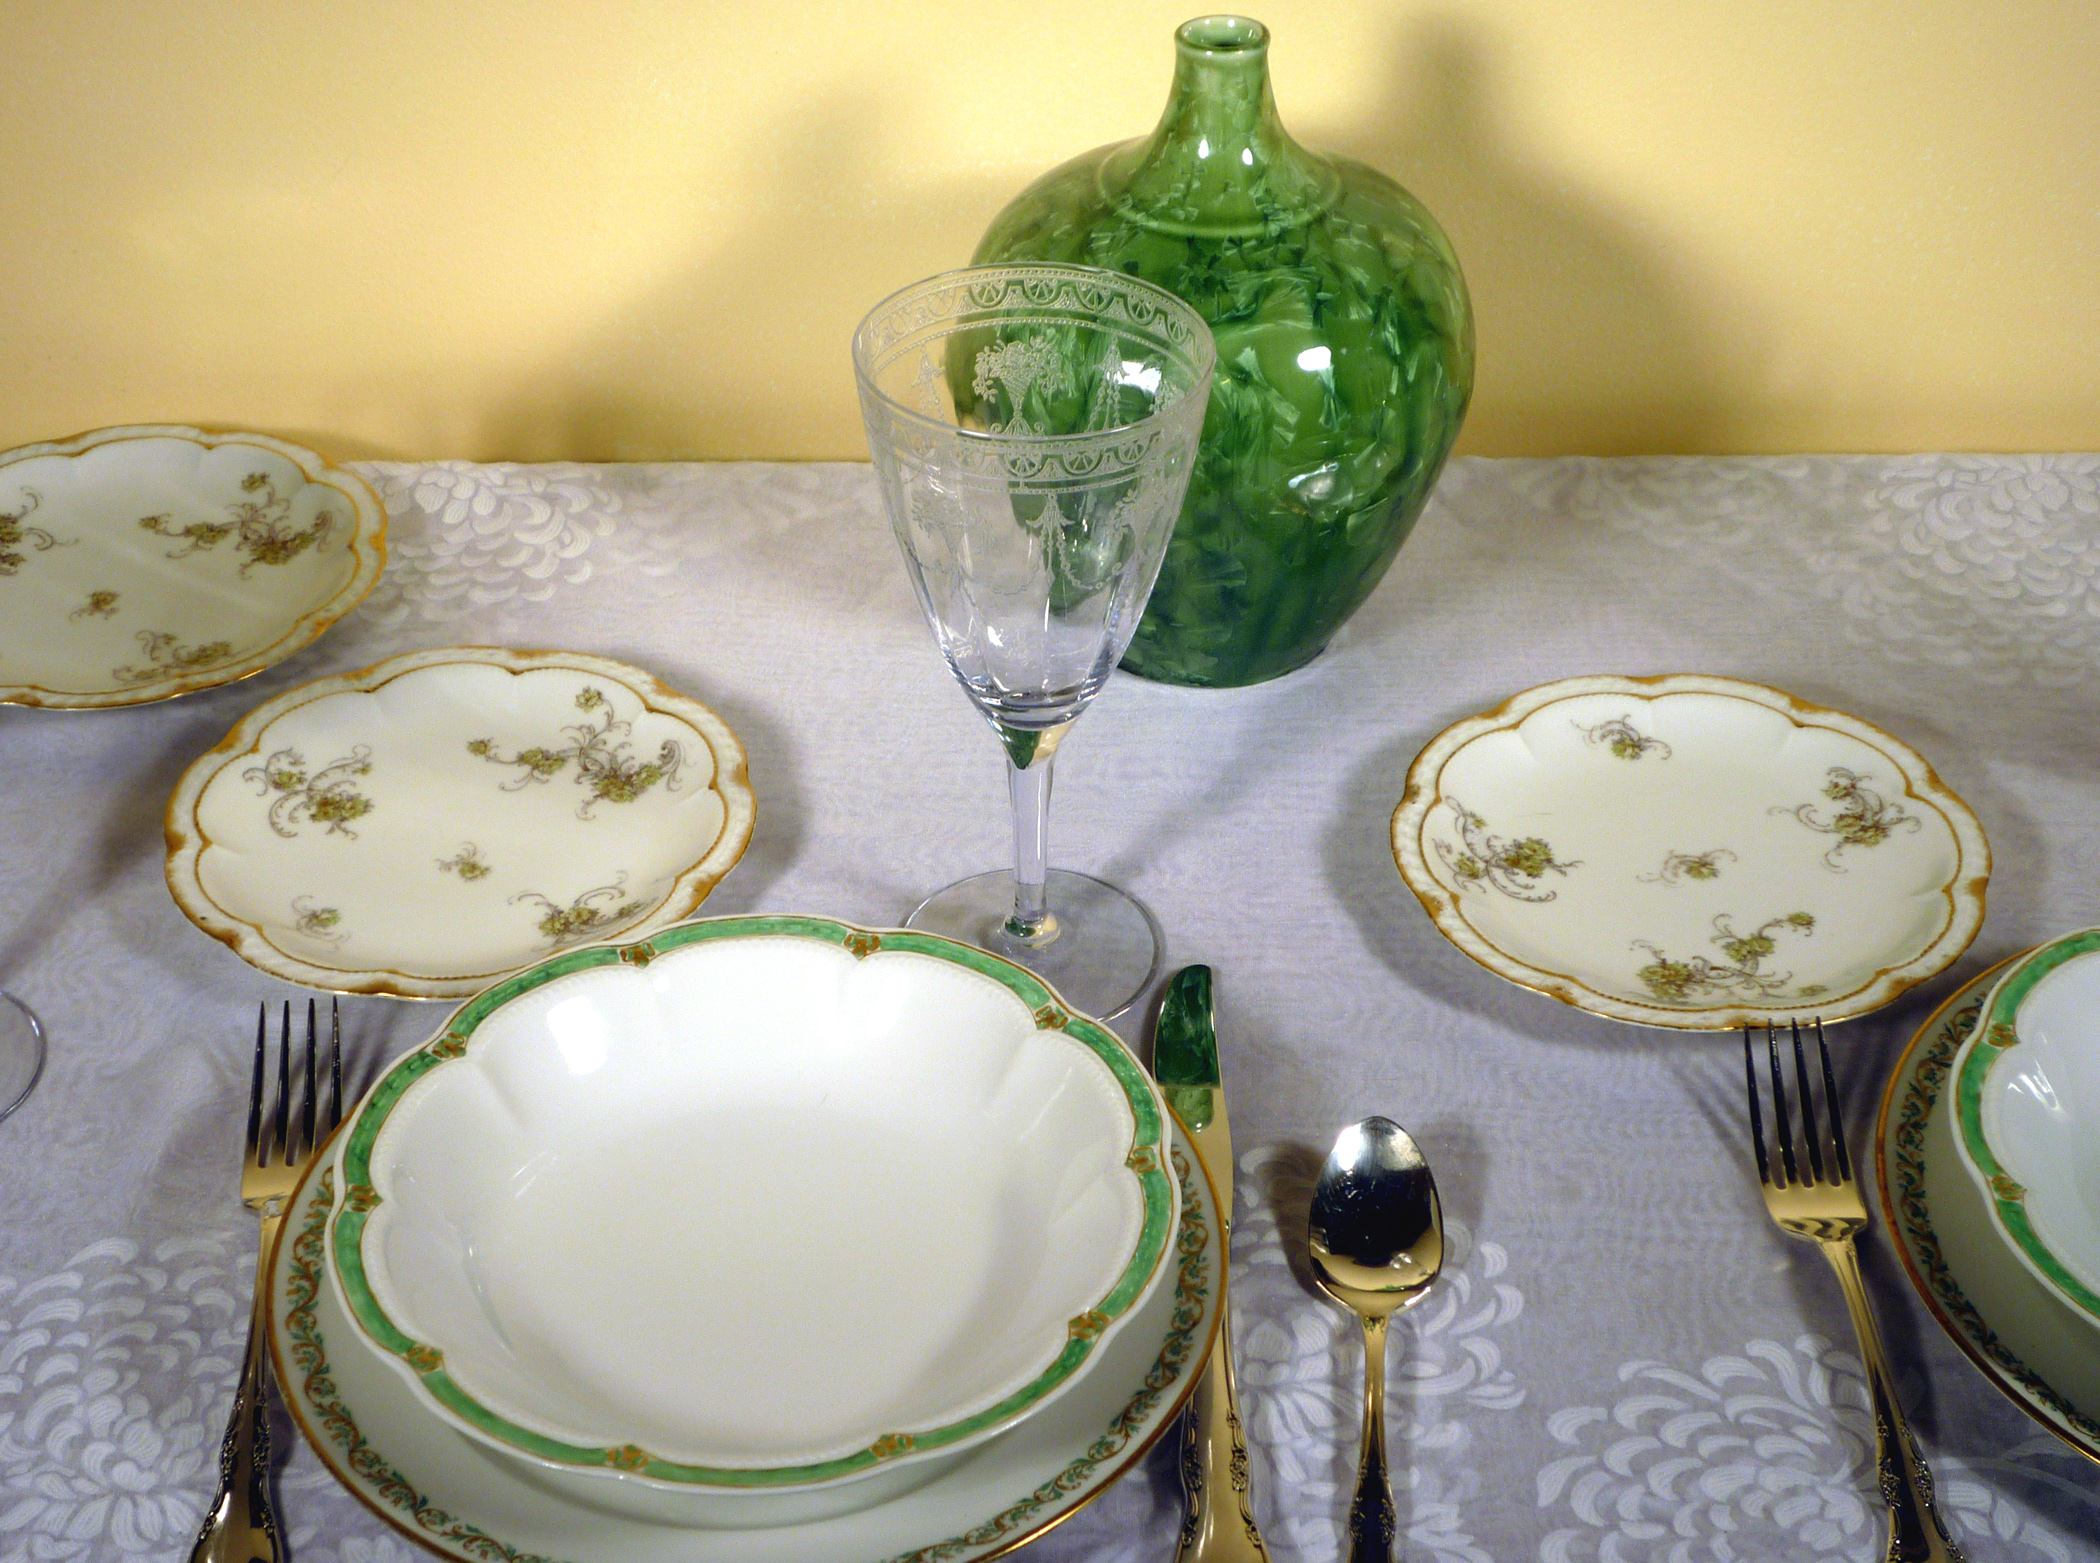 Haviland Limoges Green Themed China